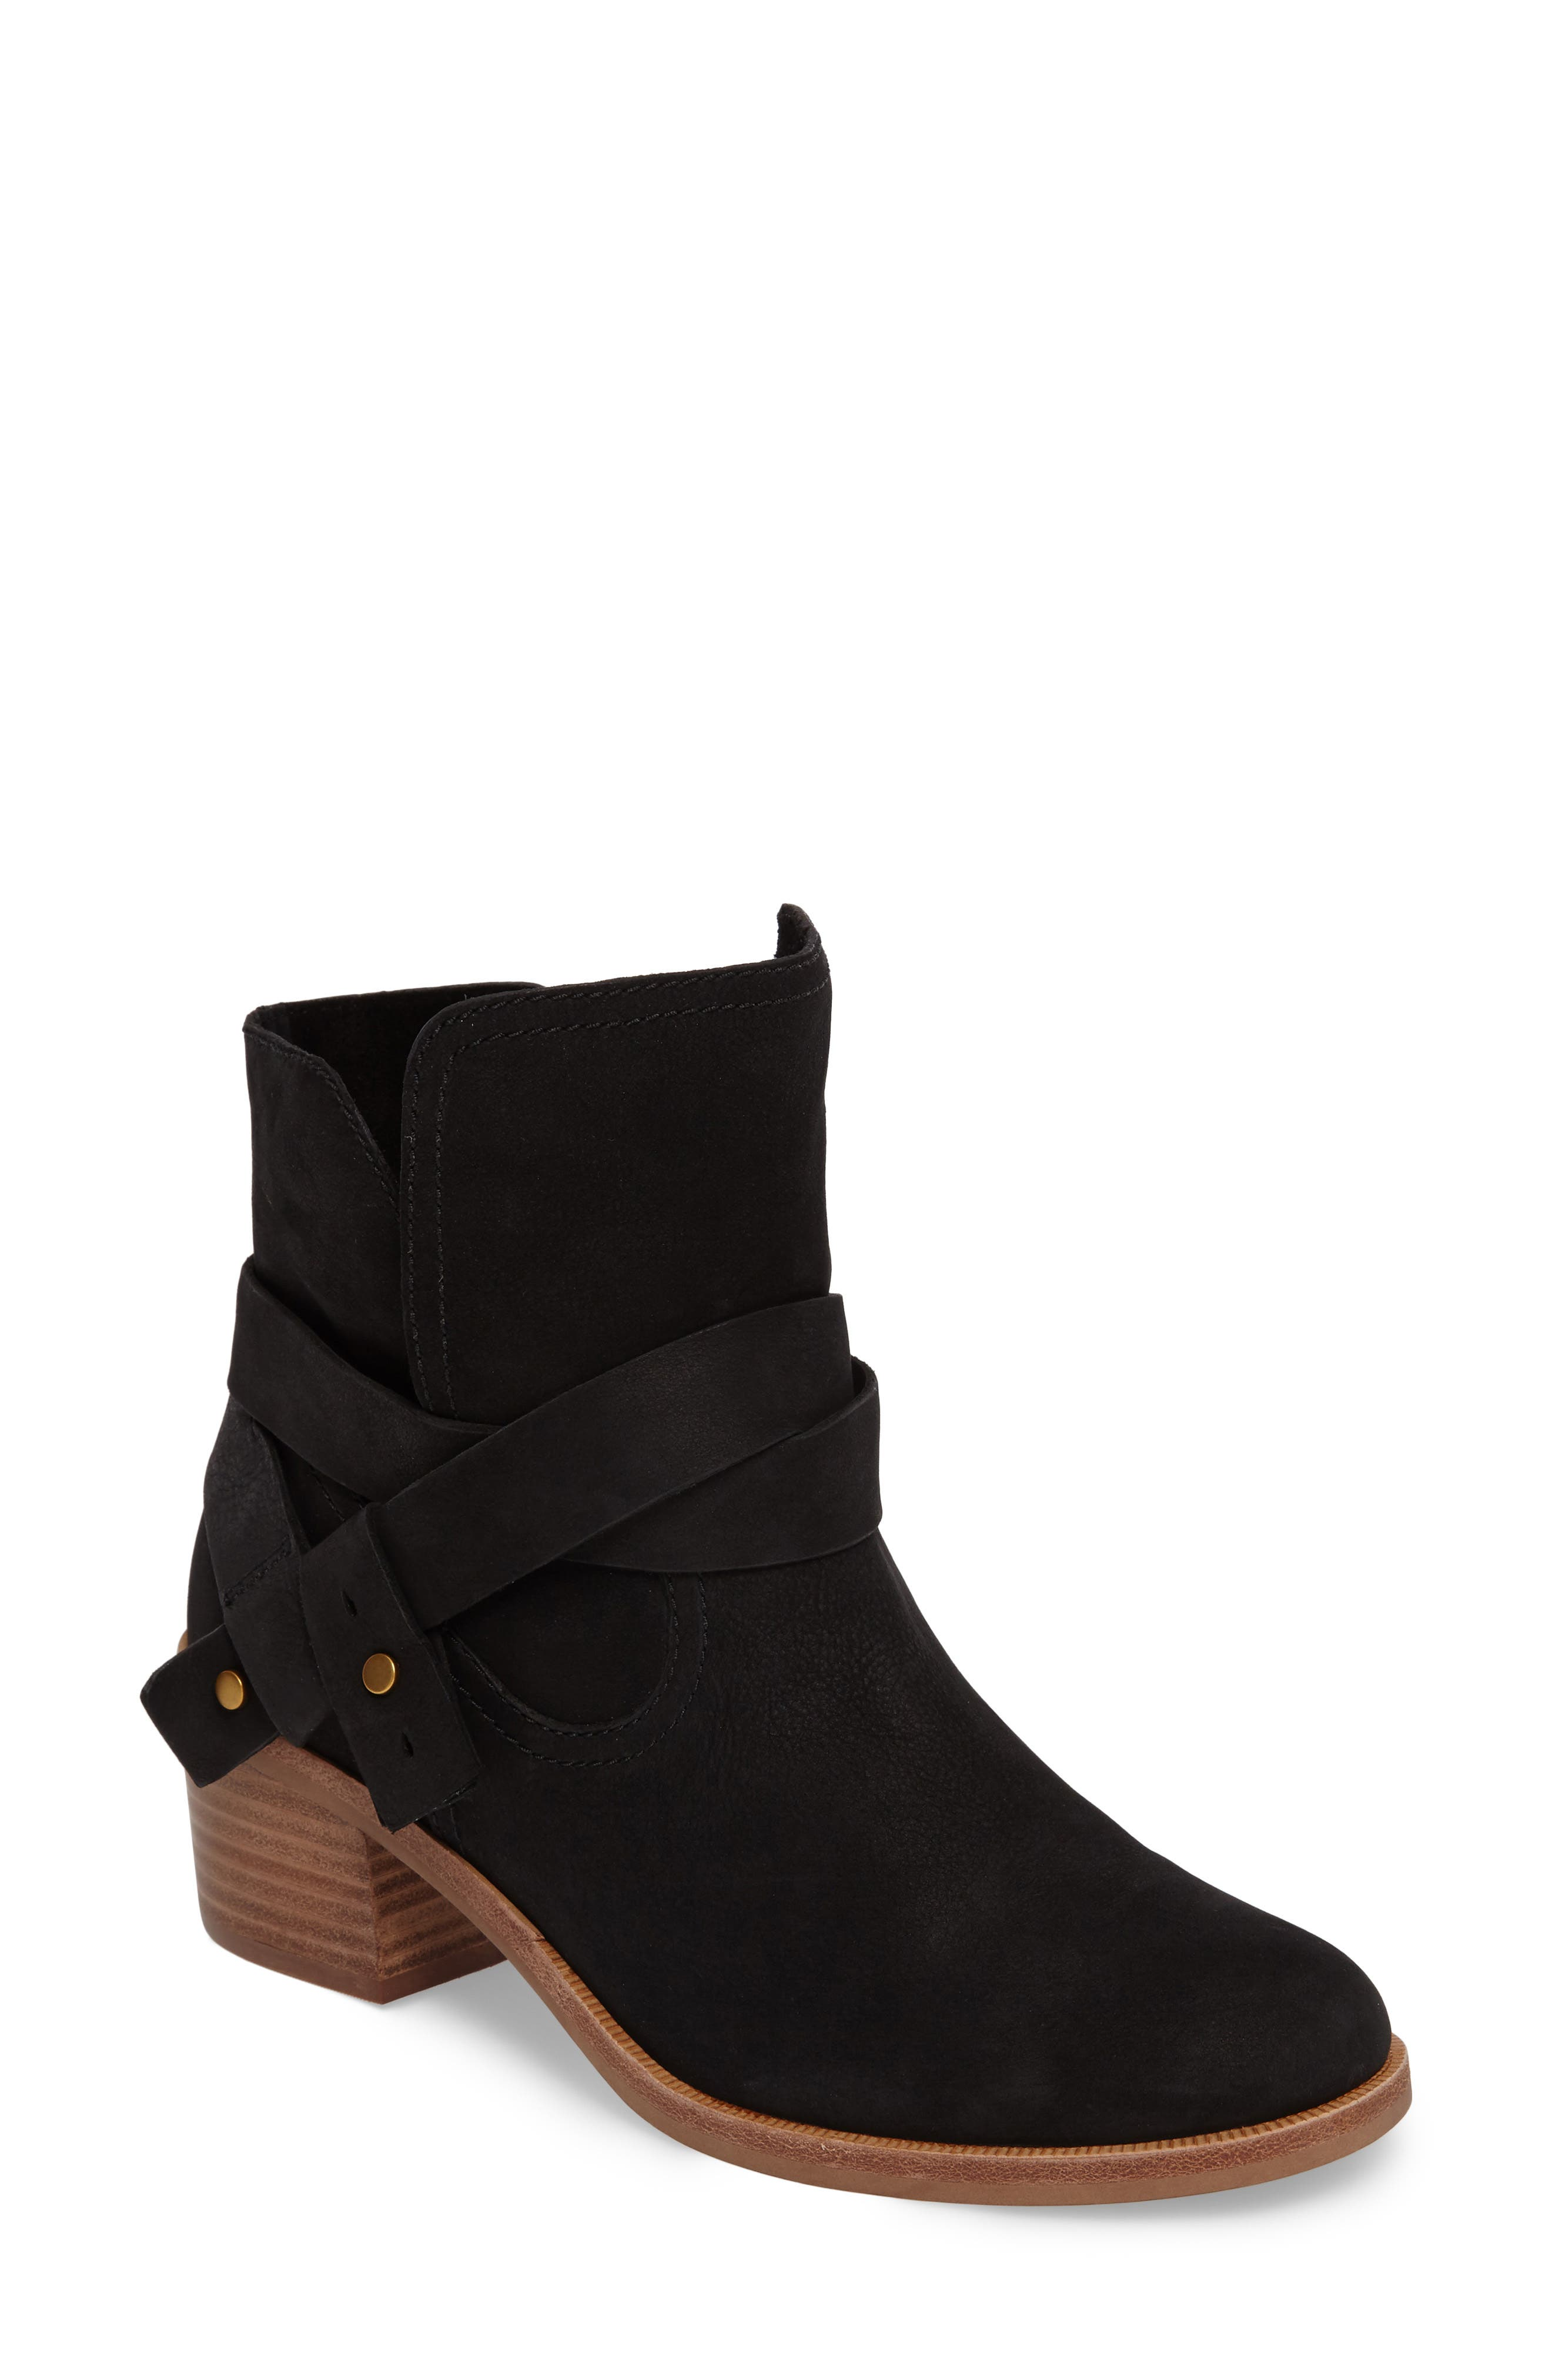 Alternate Image 1 Selected - UGG® Elora Bootie (Women)